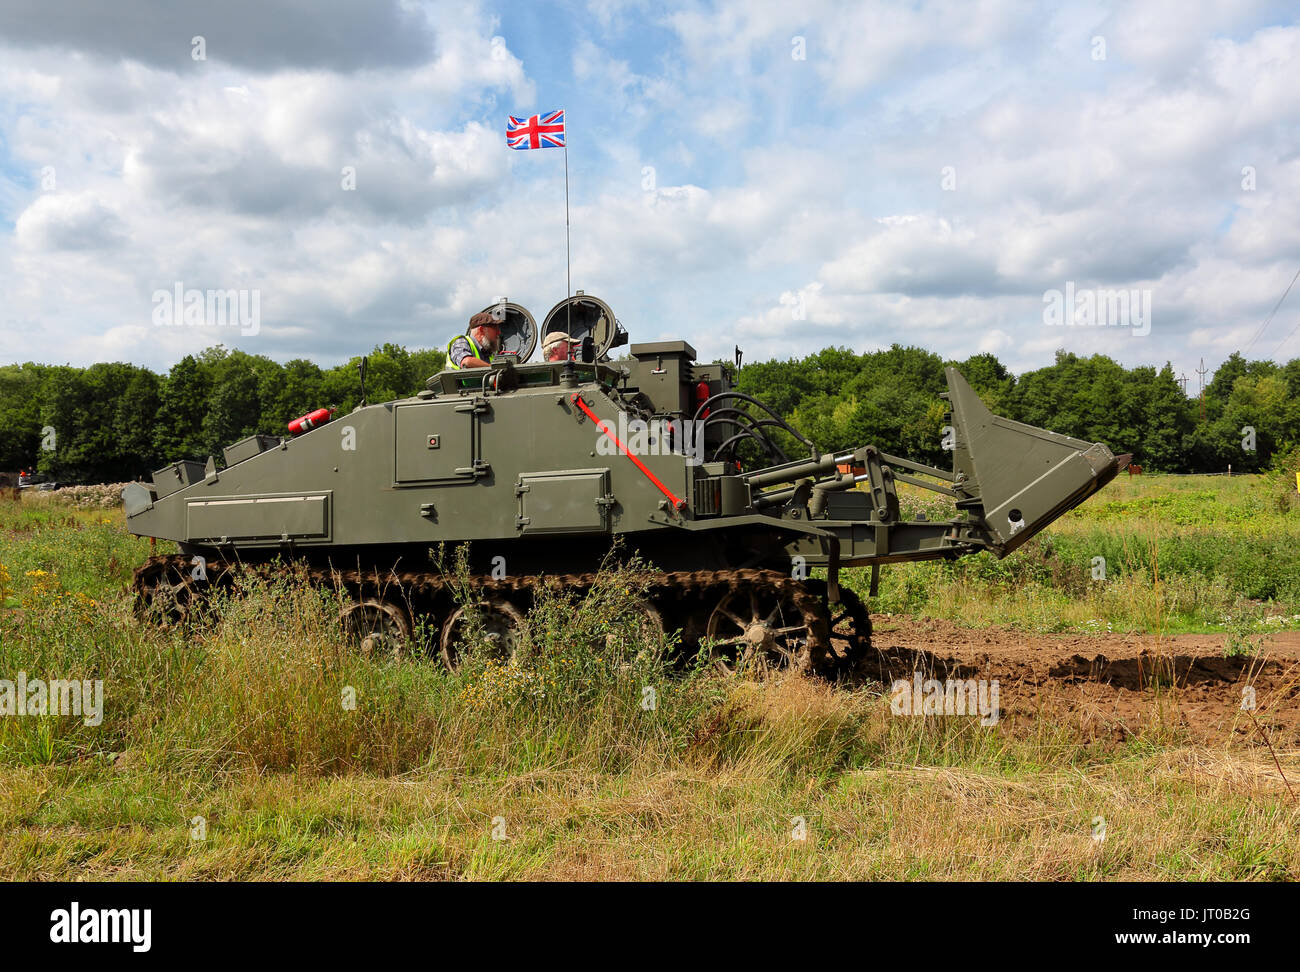 An armoured tank recovery vehicle in private ownership, beautifully restored and in full working order during a demonstration at a display. - Stock Image